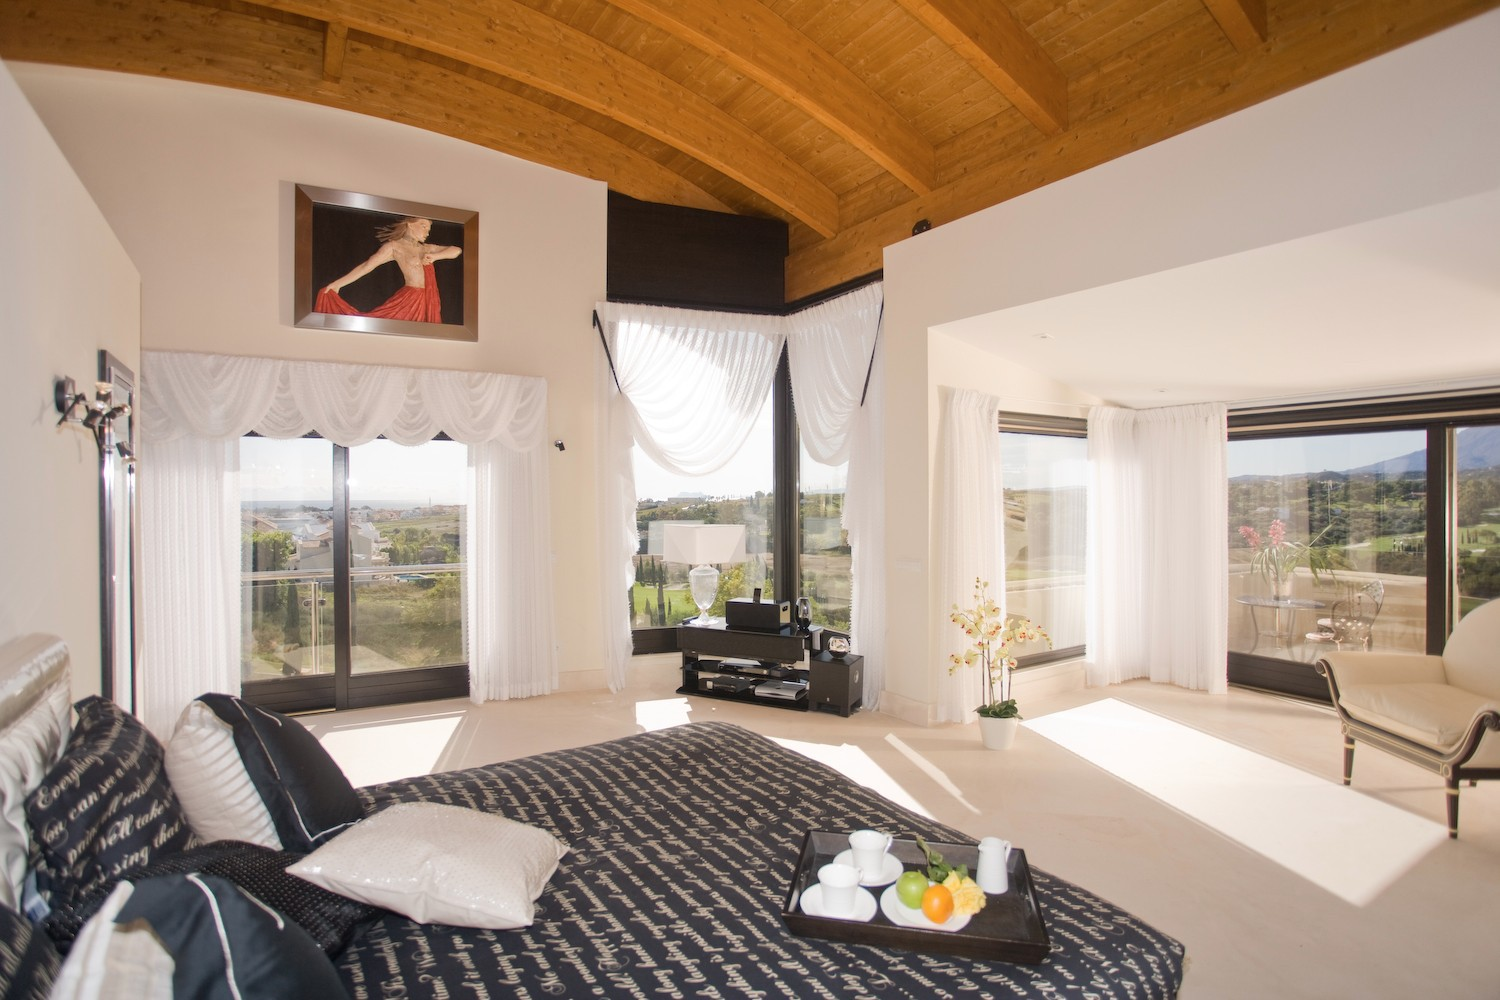 20-master-bedroom-with-private-terrace